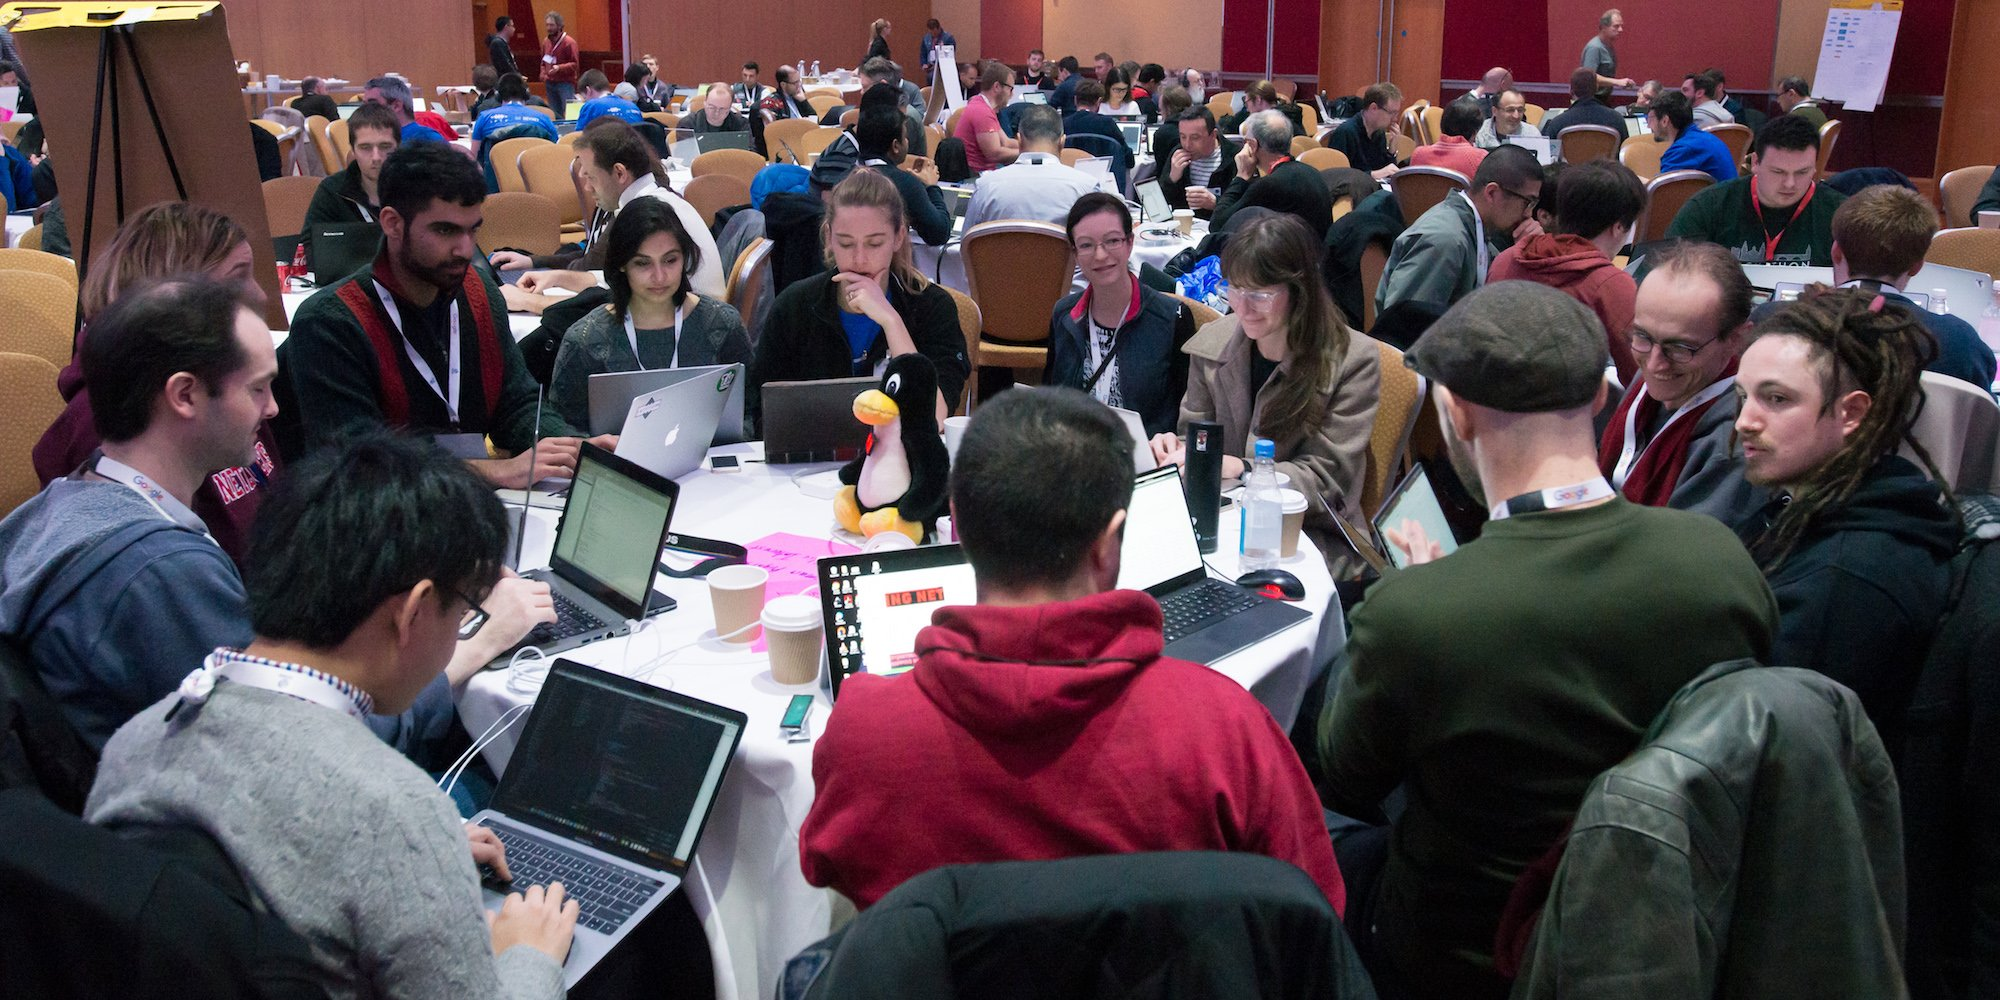 IETF Hackathon in London project